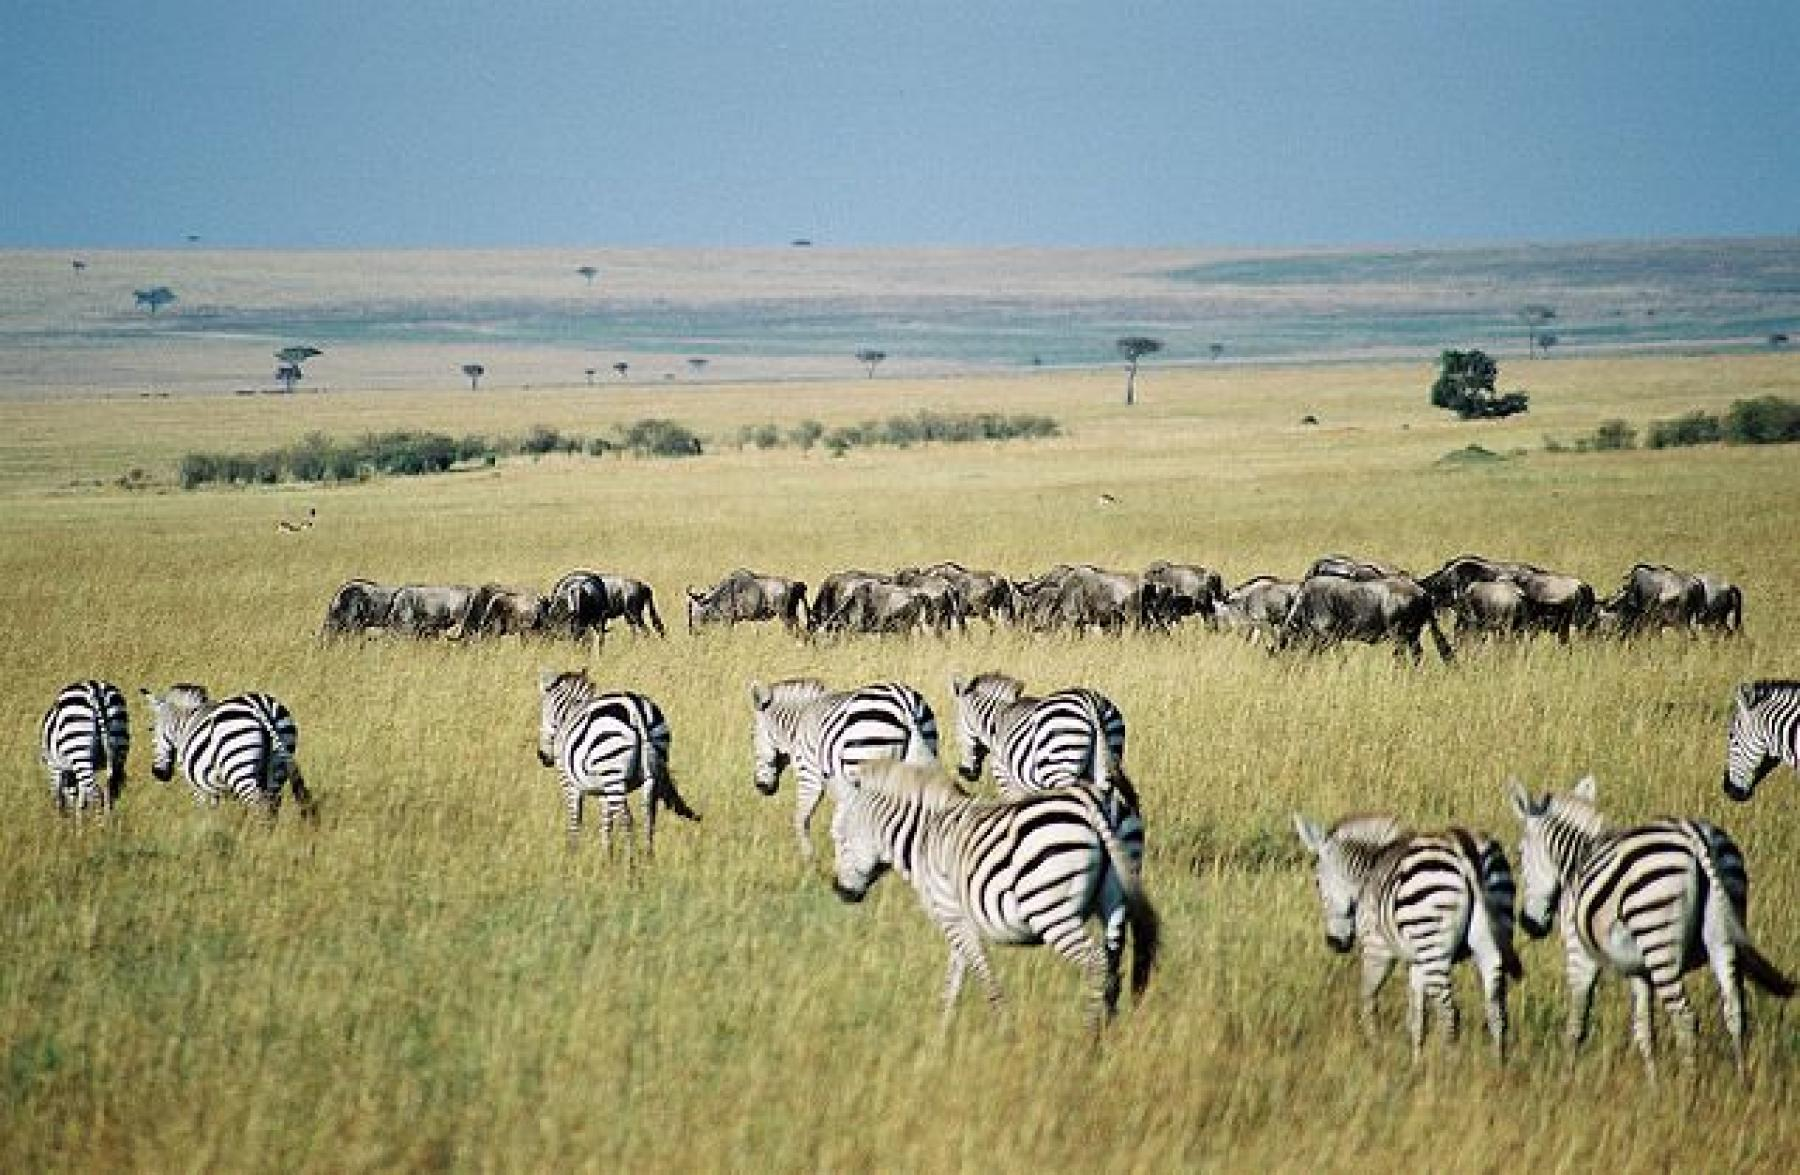 Let's experience the greatest wildlife show and migration - Masai Mara  - Budget starting at Nairobi, Nairobi County, Kenya